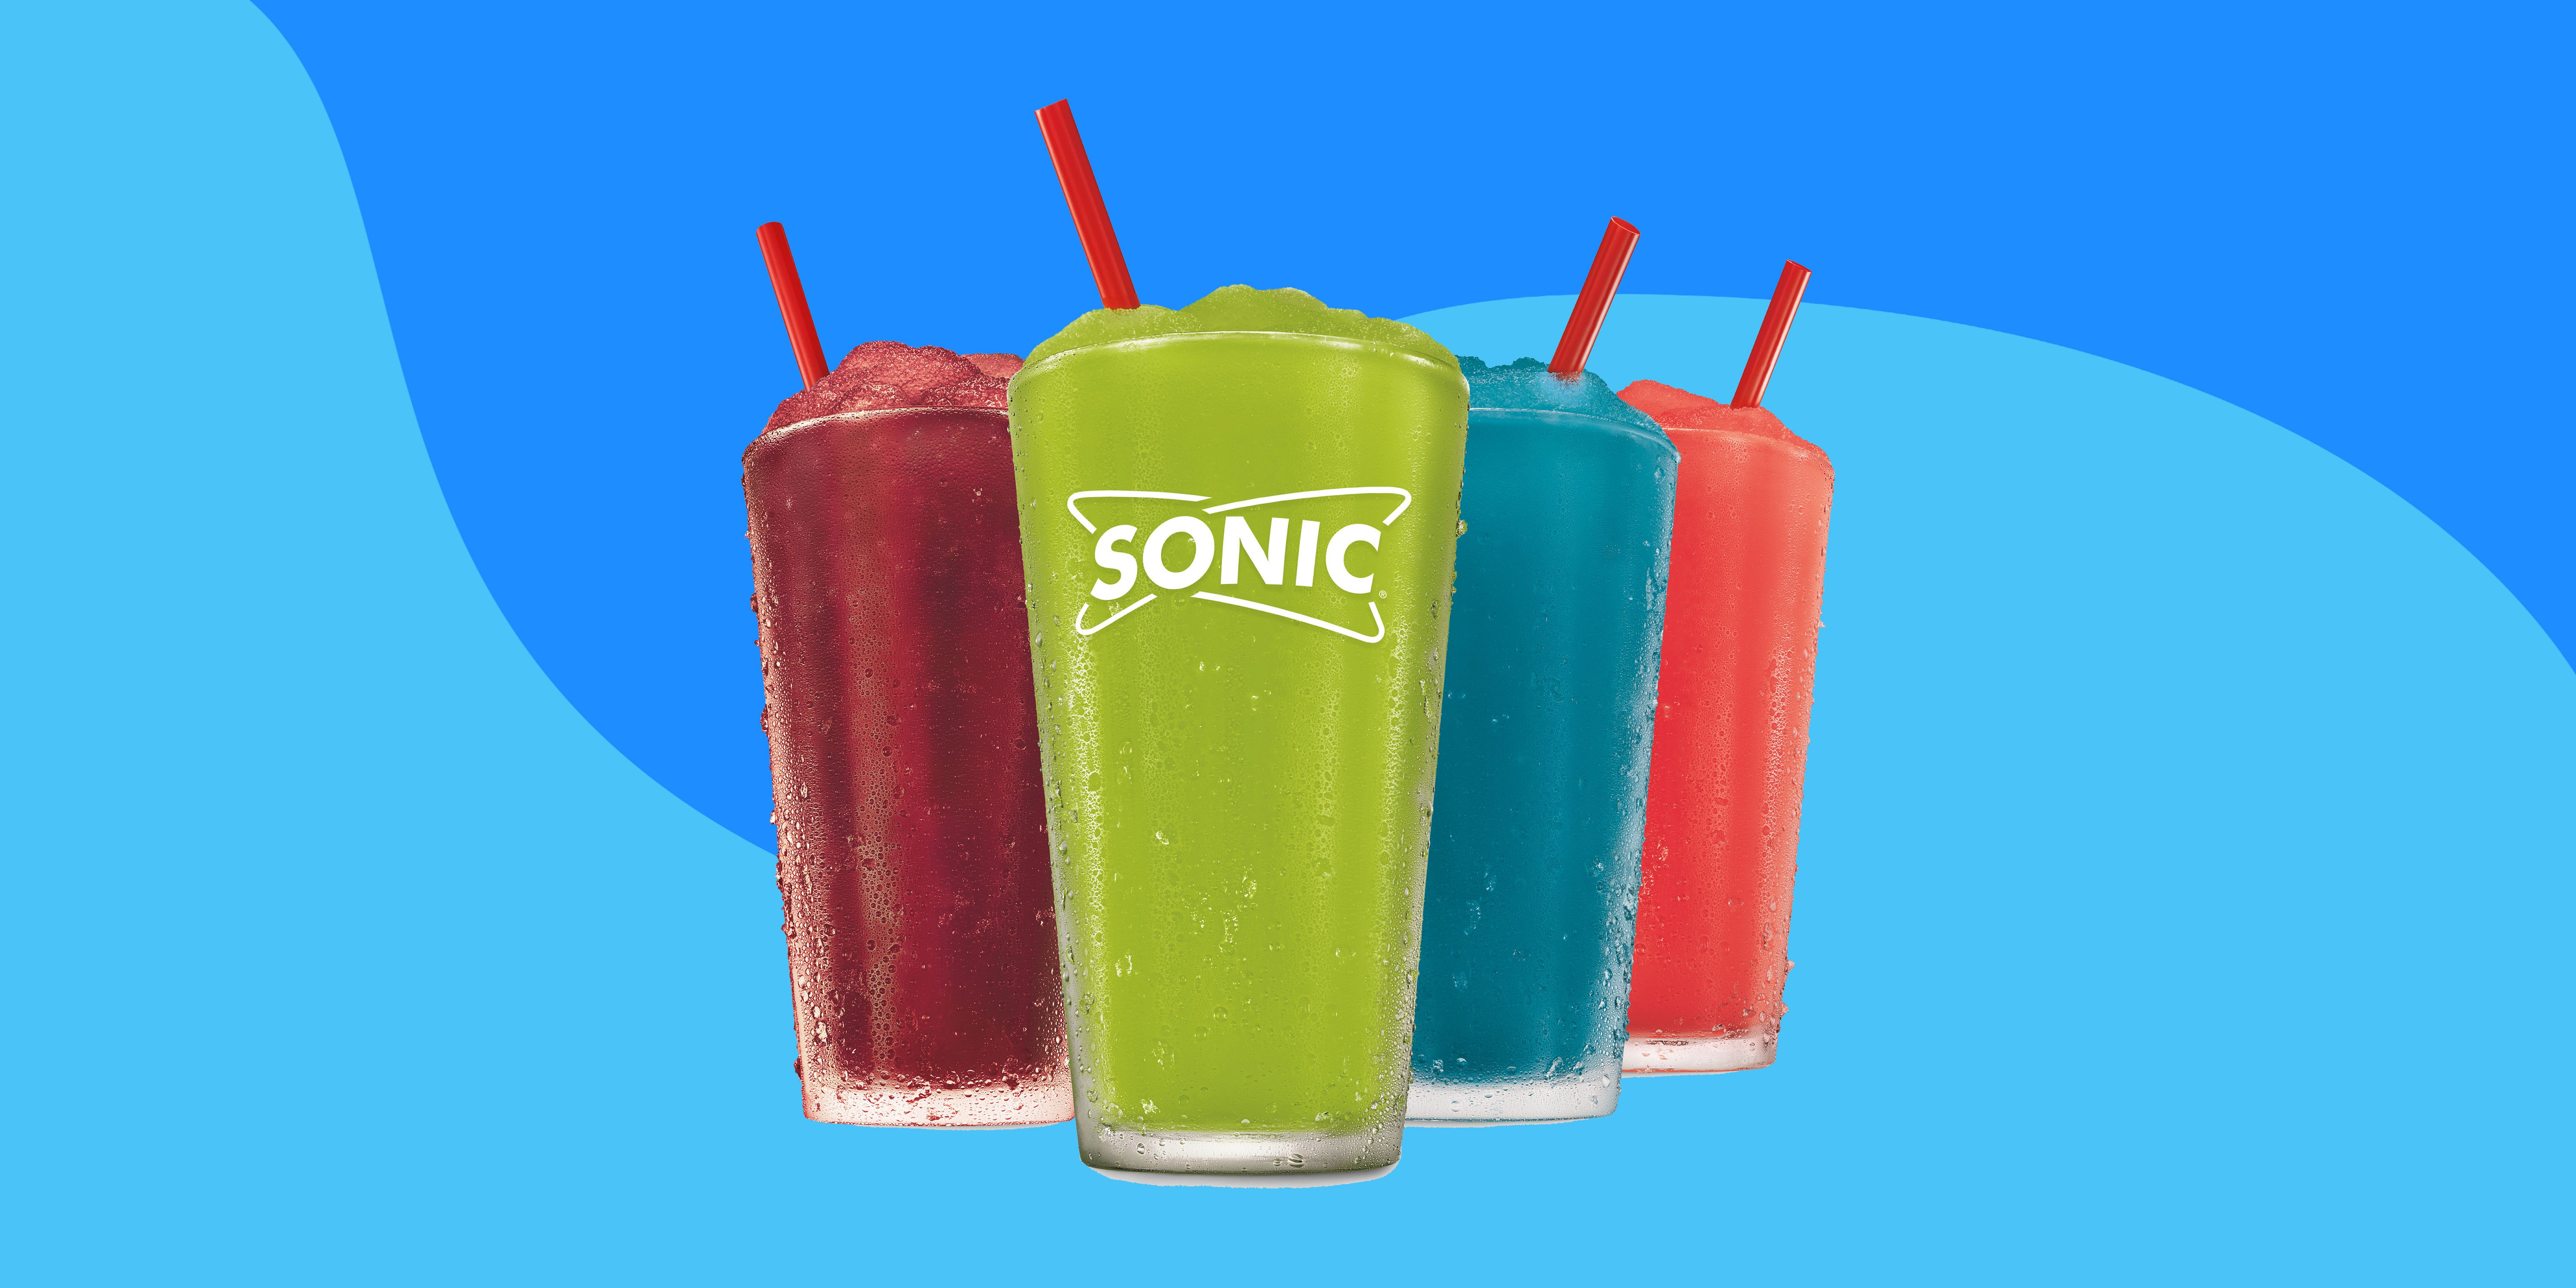 sonic to sell pickle juice slushes in june pickle flavored slush drinks - Sonic Christmas Hours